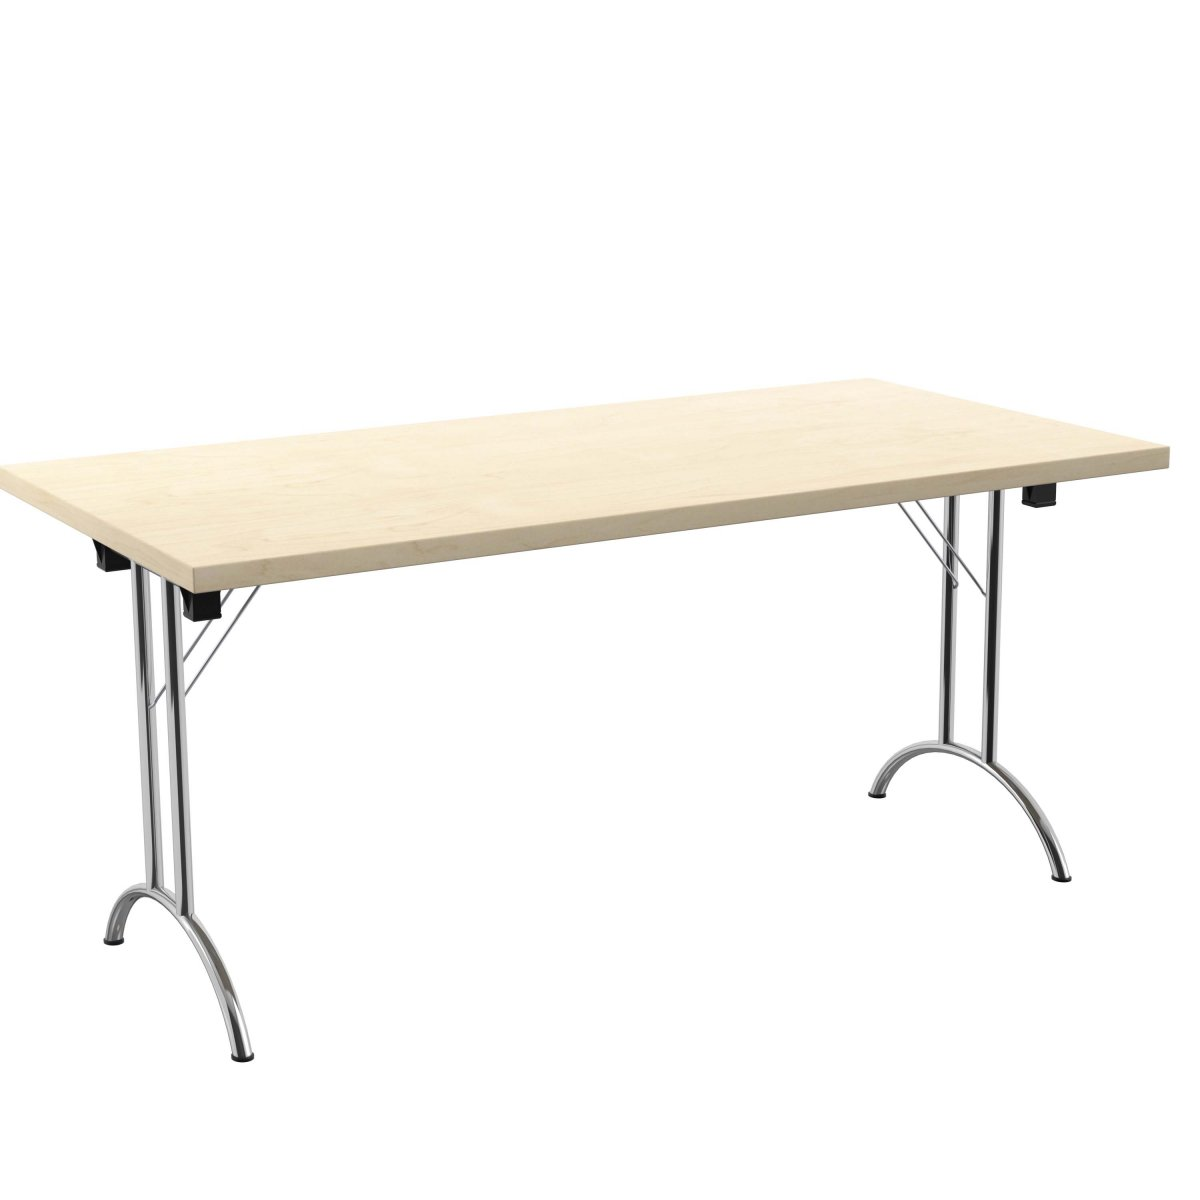 One Union Folding Table 1600 X 800 Silver Frame Maple Rectangular Top